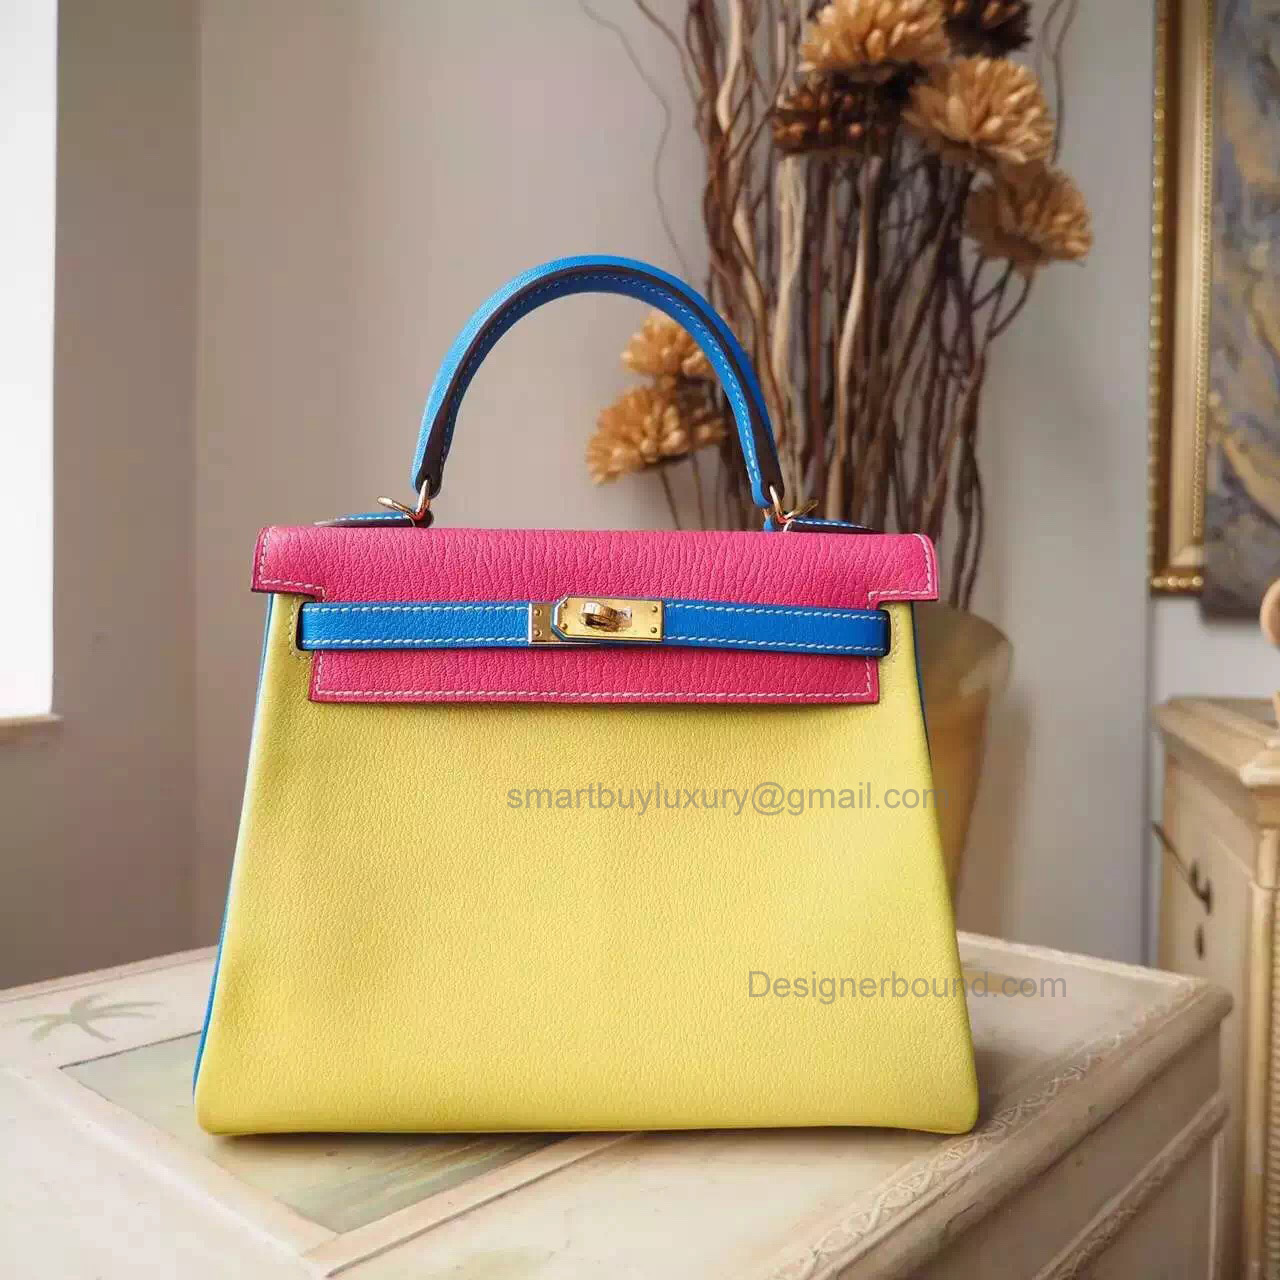 Fake Hermes Kelly 25 Bag in Multicolored c9 Soufre Chevre Myzore Goatskin GHW